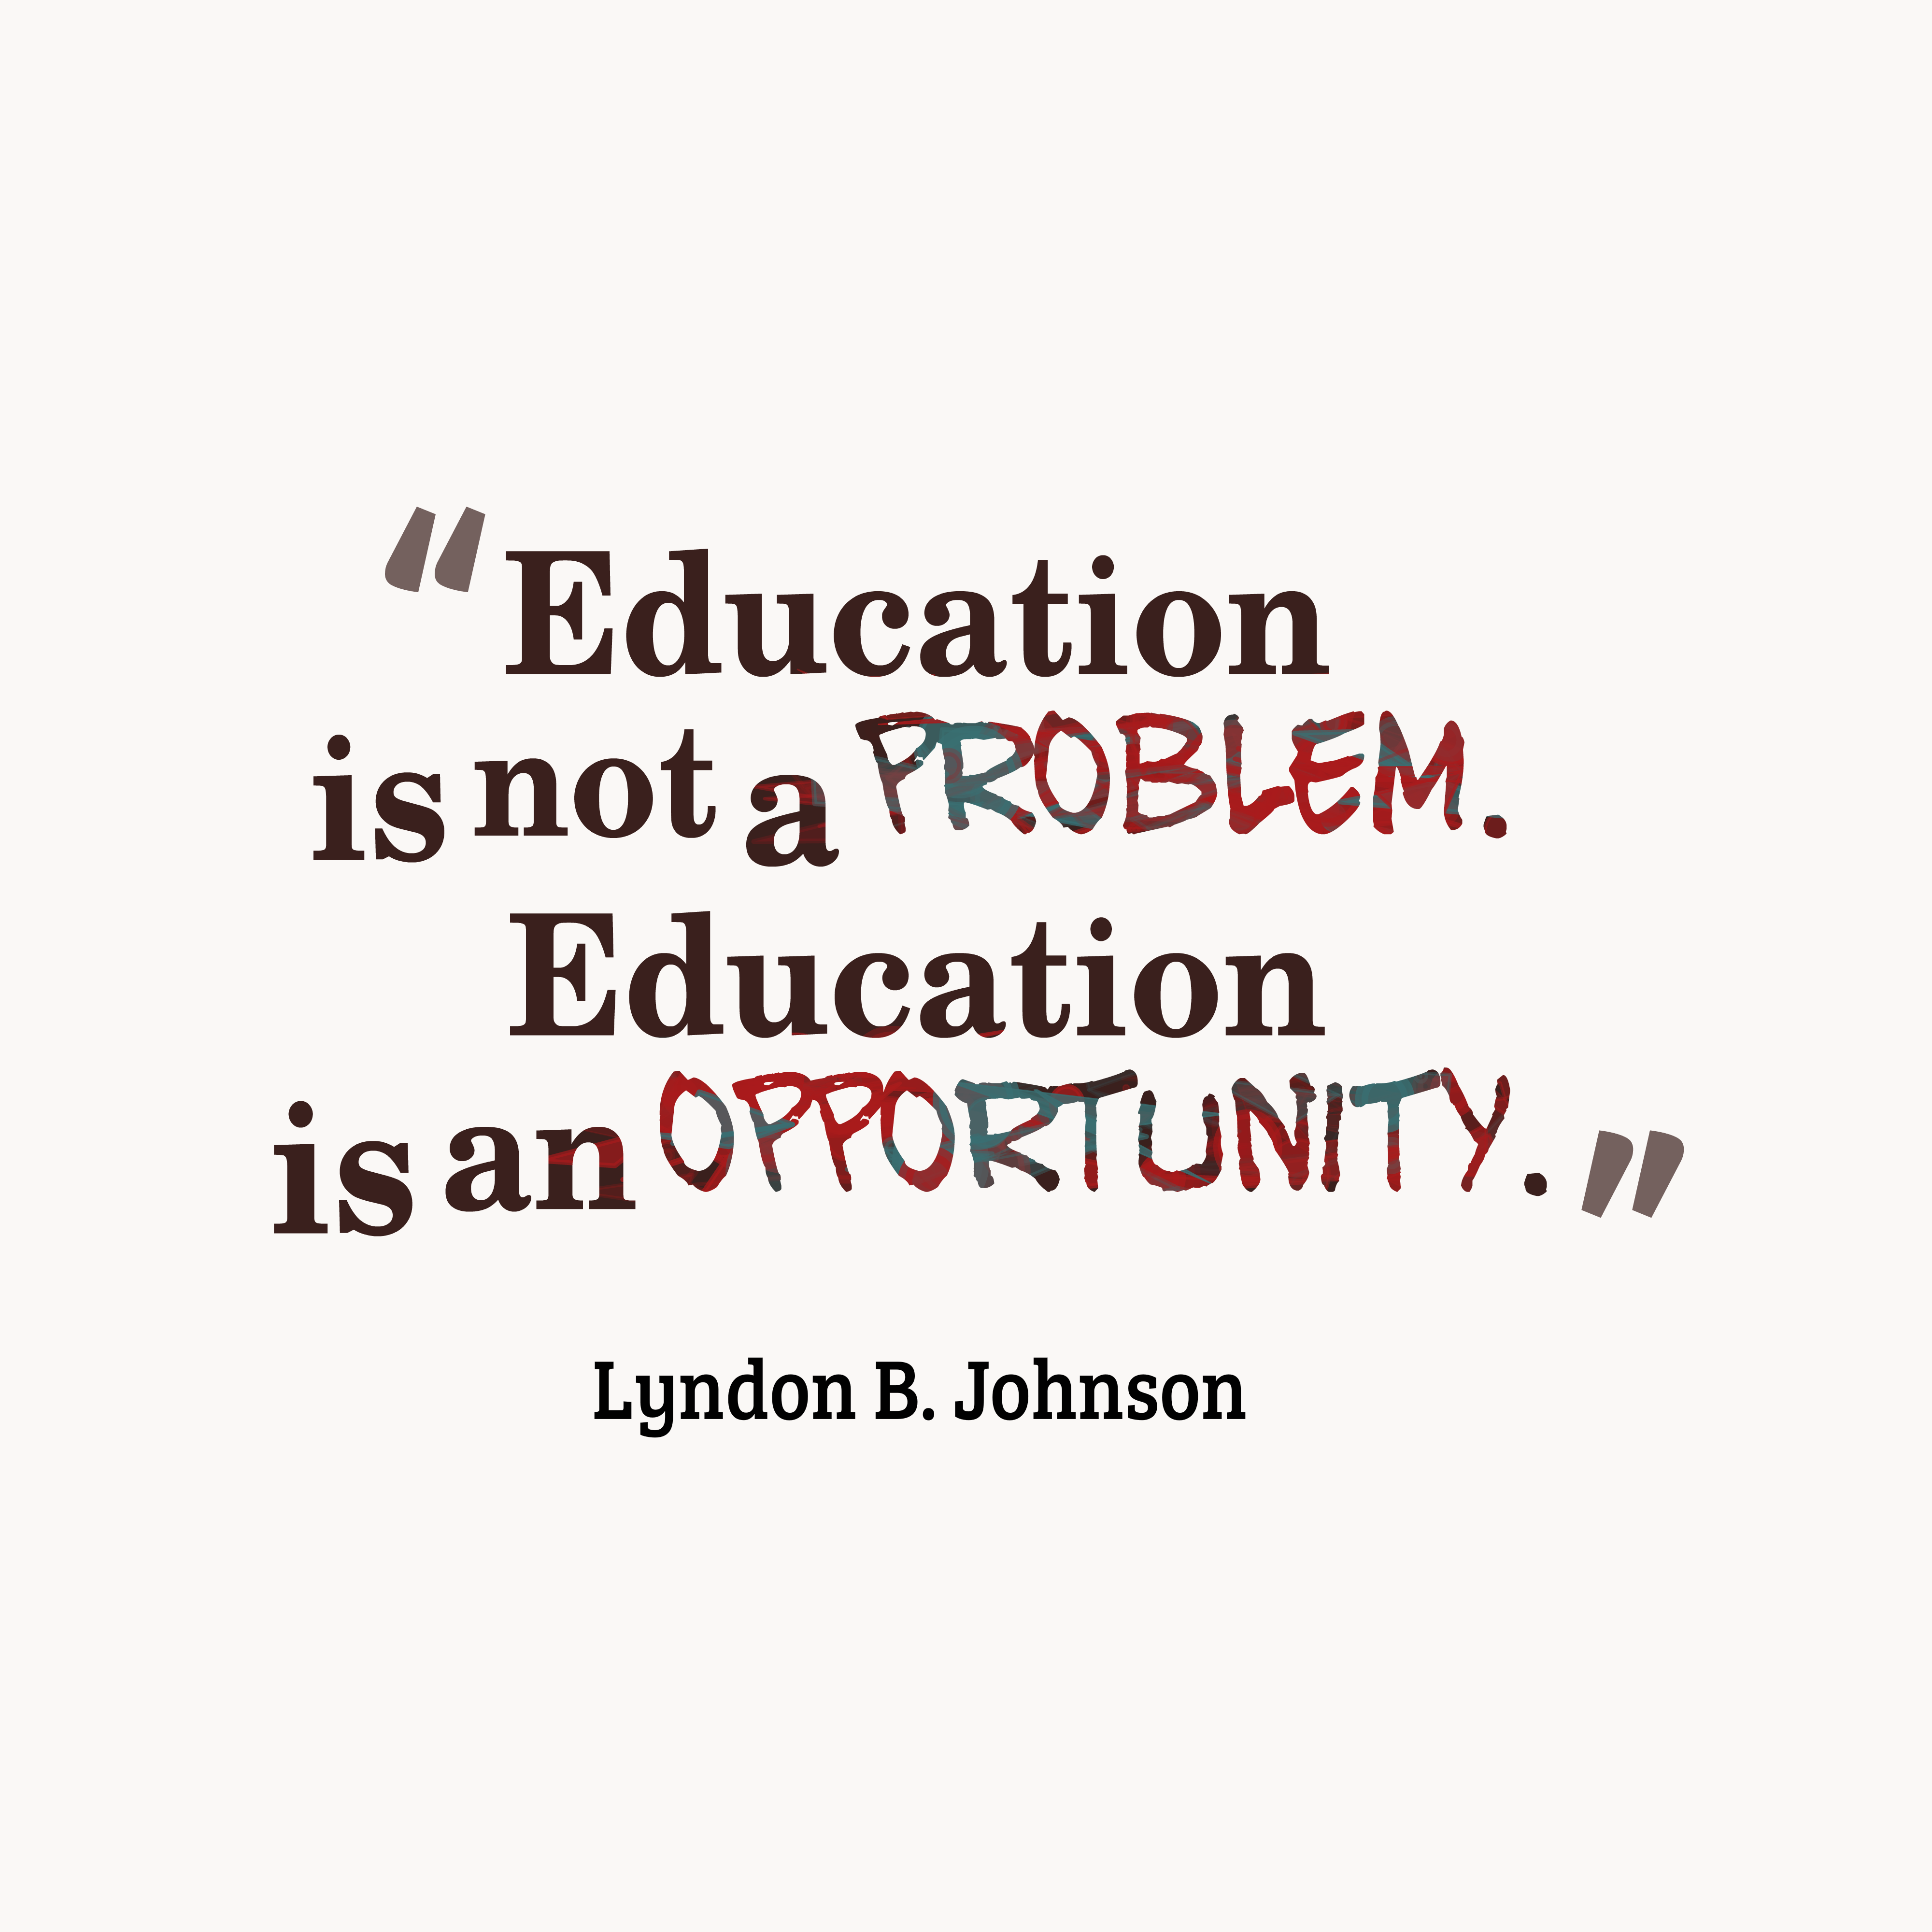 Education Quotes Education Learnenglish Learnmaths Education